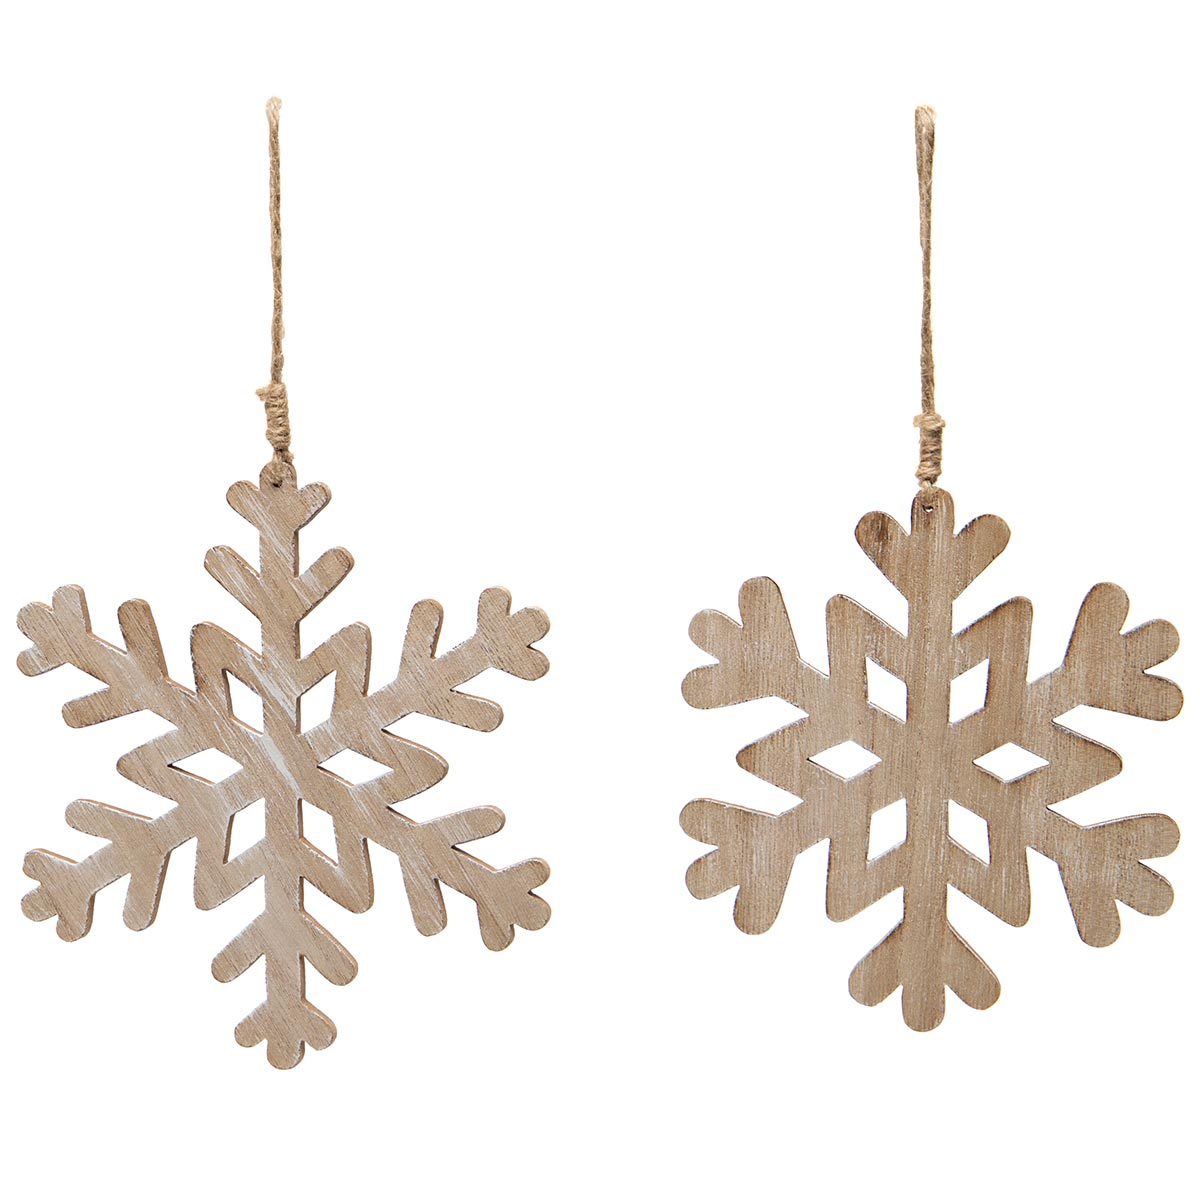 ALPINE SNOWFLAKE WOOD ORNAMENT NATURAL WITH TWINE